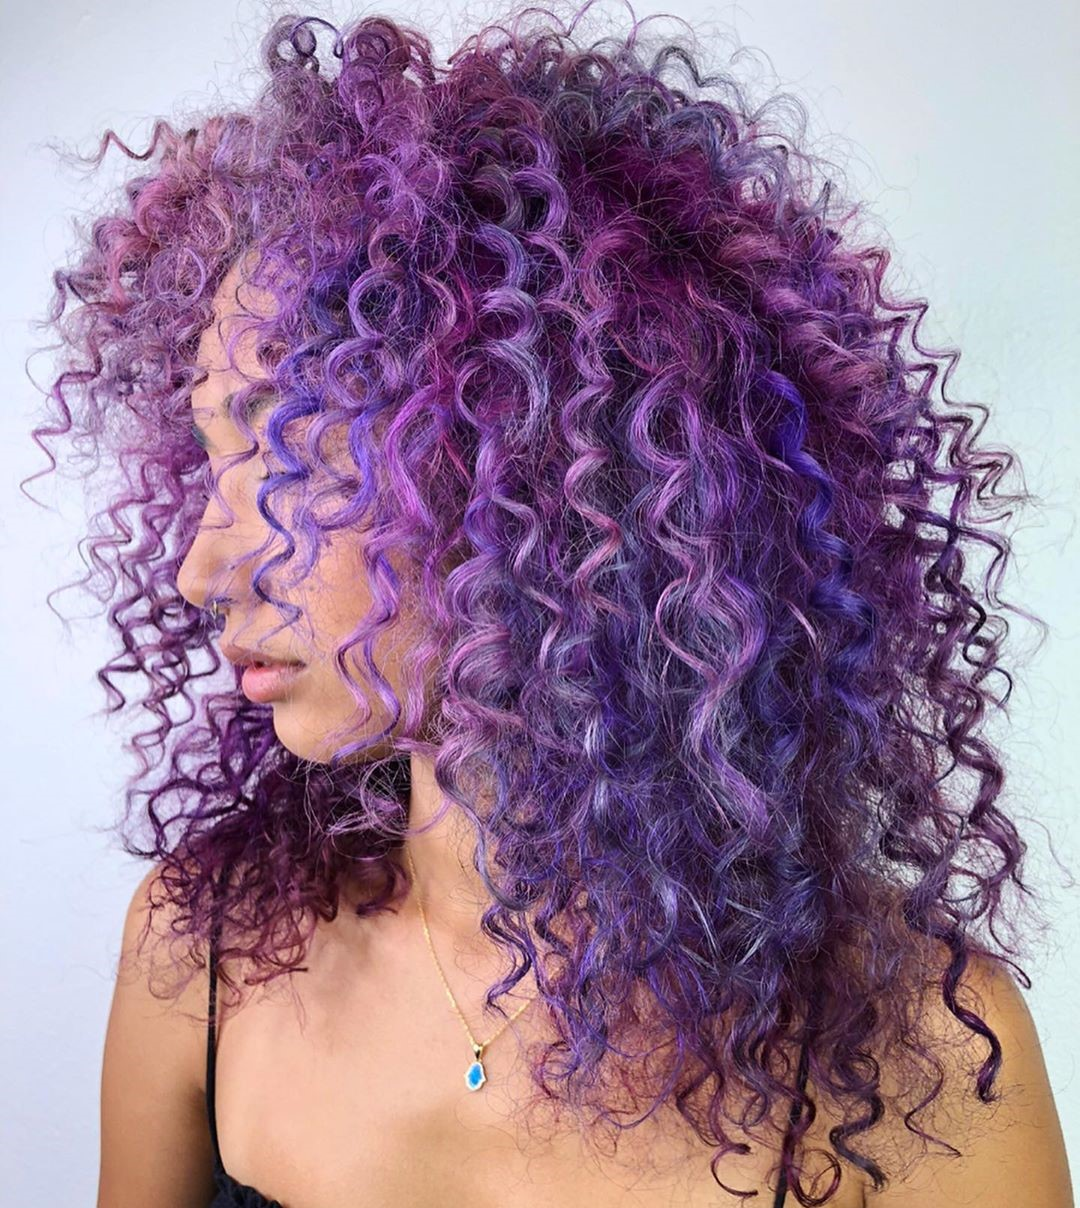 Curly Purple Hair with Blue Highlights